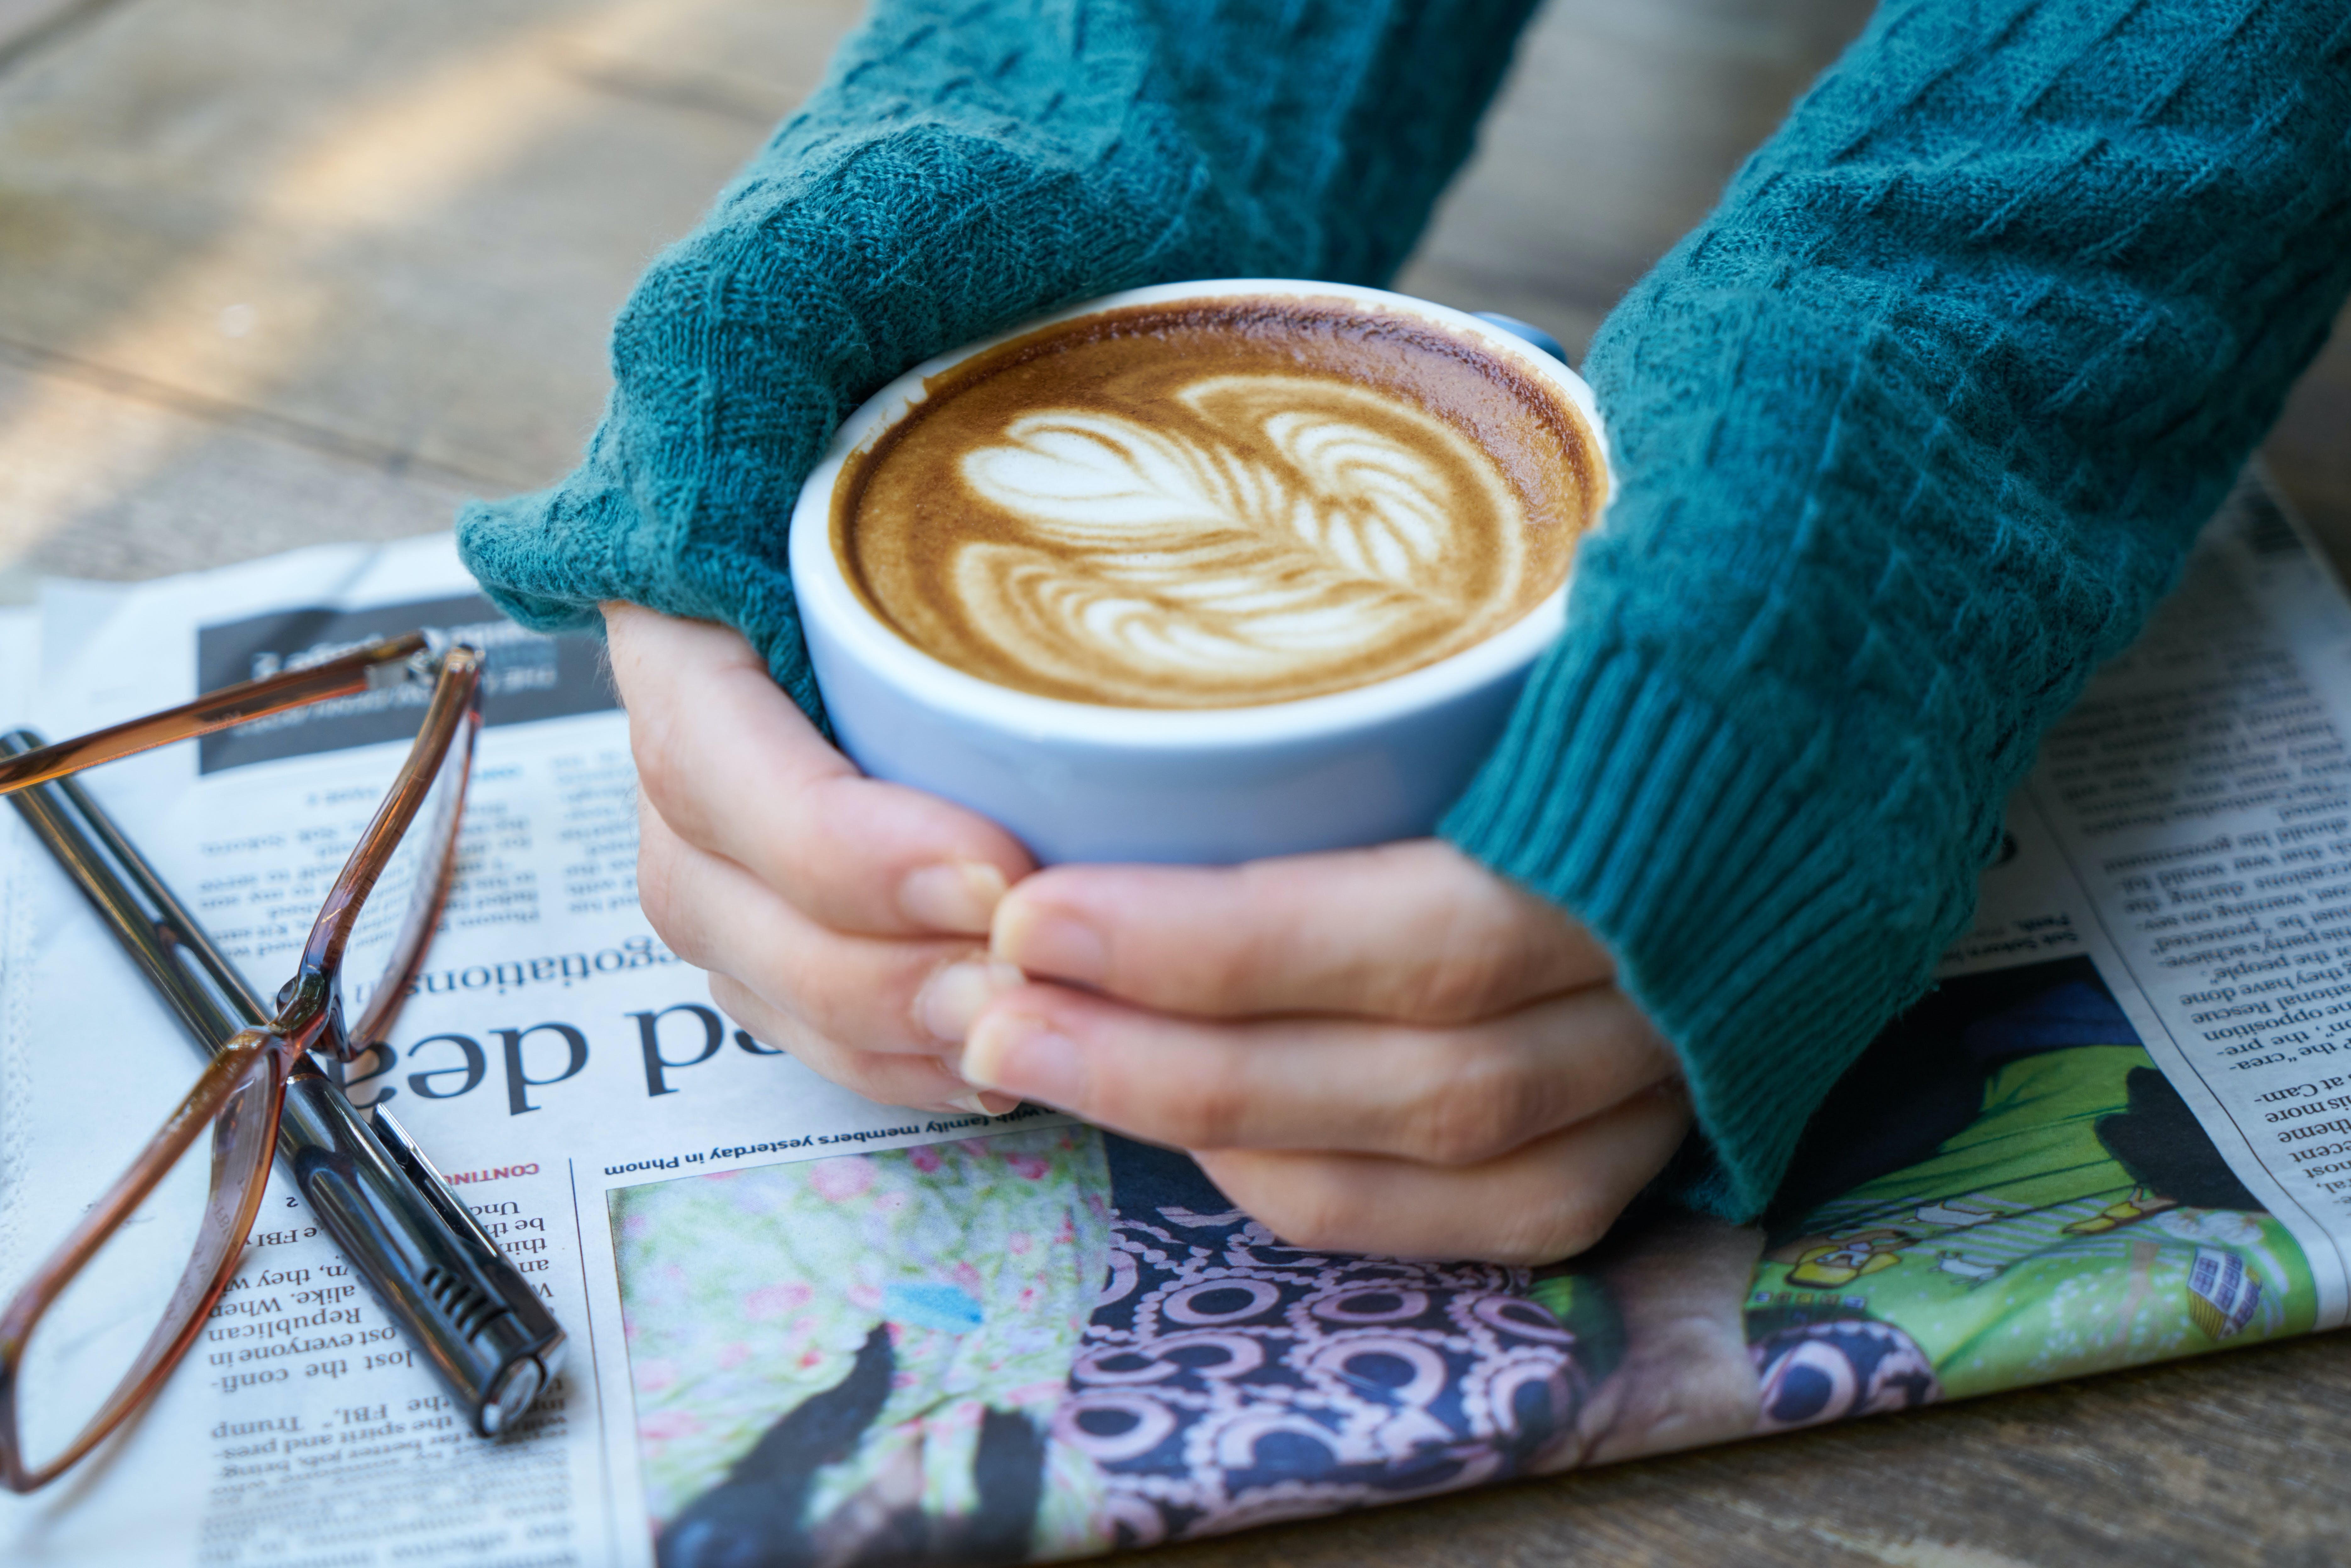 Person Holding Cup of Cappuccino With Both Hands